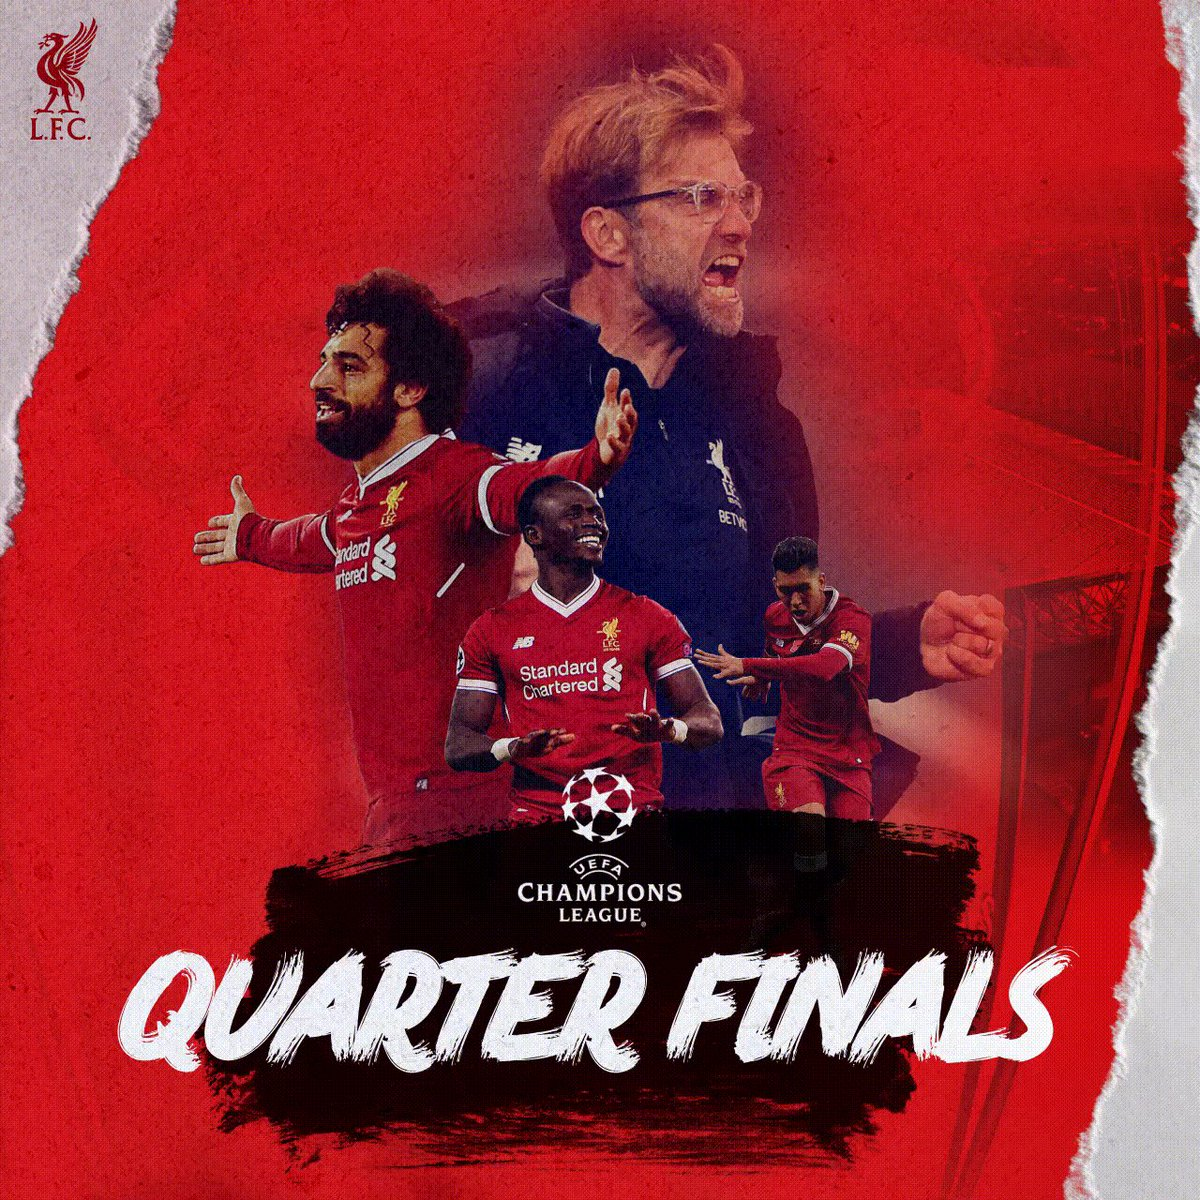 Who would you like #LFC to face in the #UCL quarter-finals? 👇 Potential opponents 👇 Real Madrid Man City or Basel Tottenham or Juventus Barcelona or Chelsea Bayern Munich or Besiktas Roma or Shakhtar Man United or Sevilla #UCL QF draw will take place on Friday 16th March.